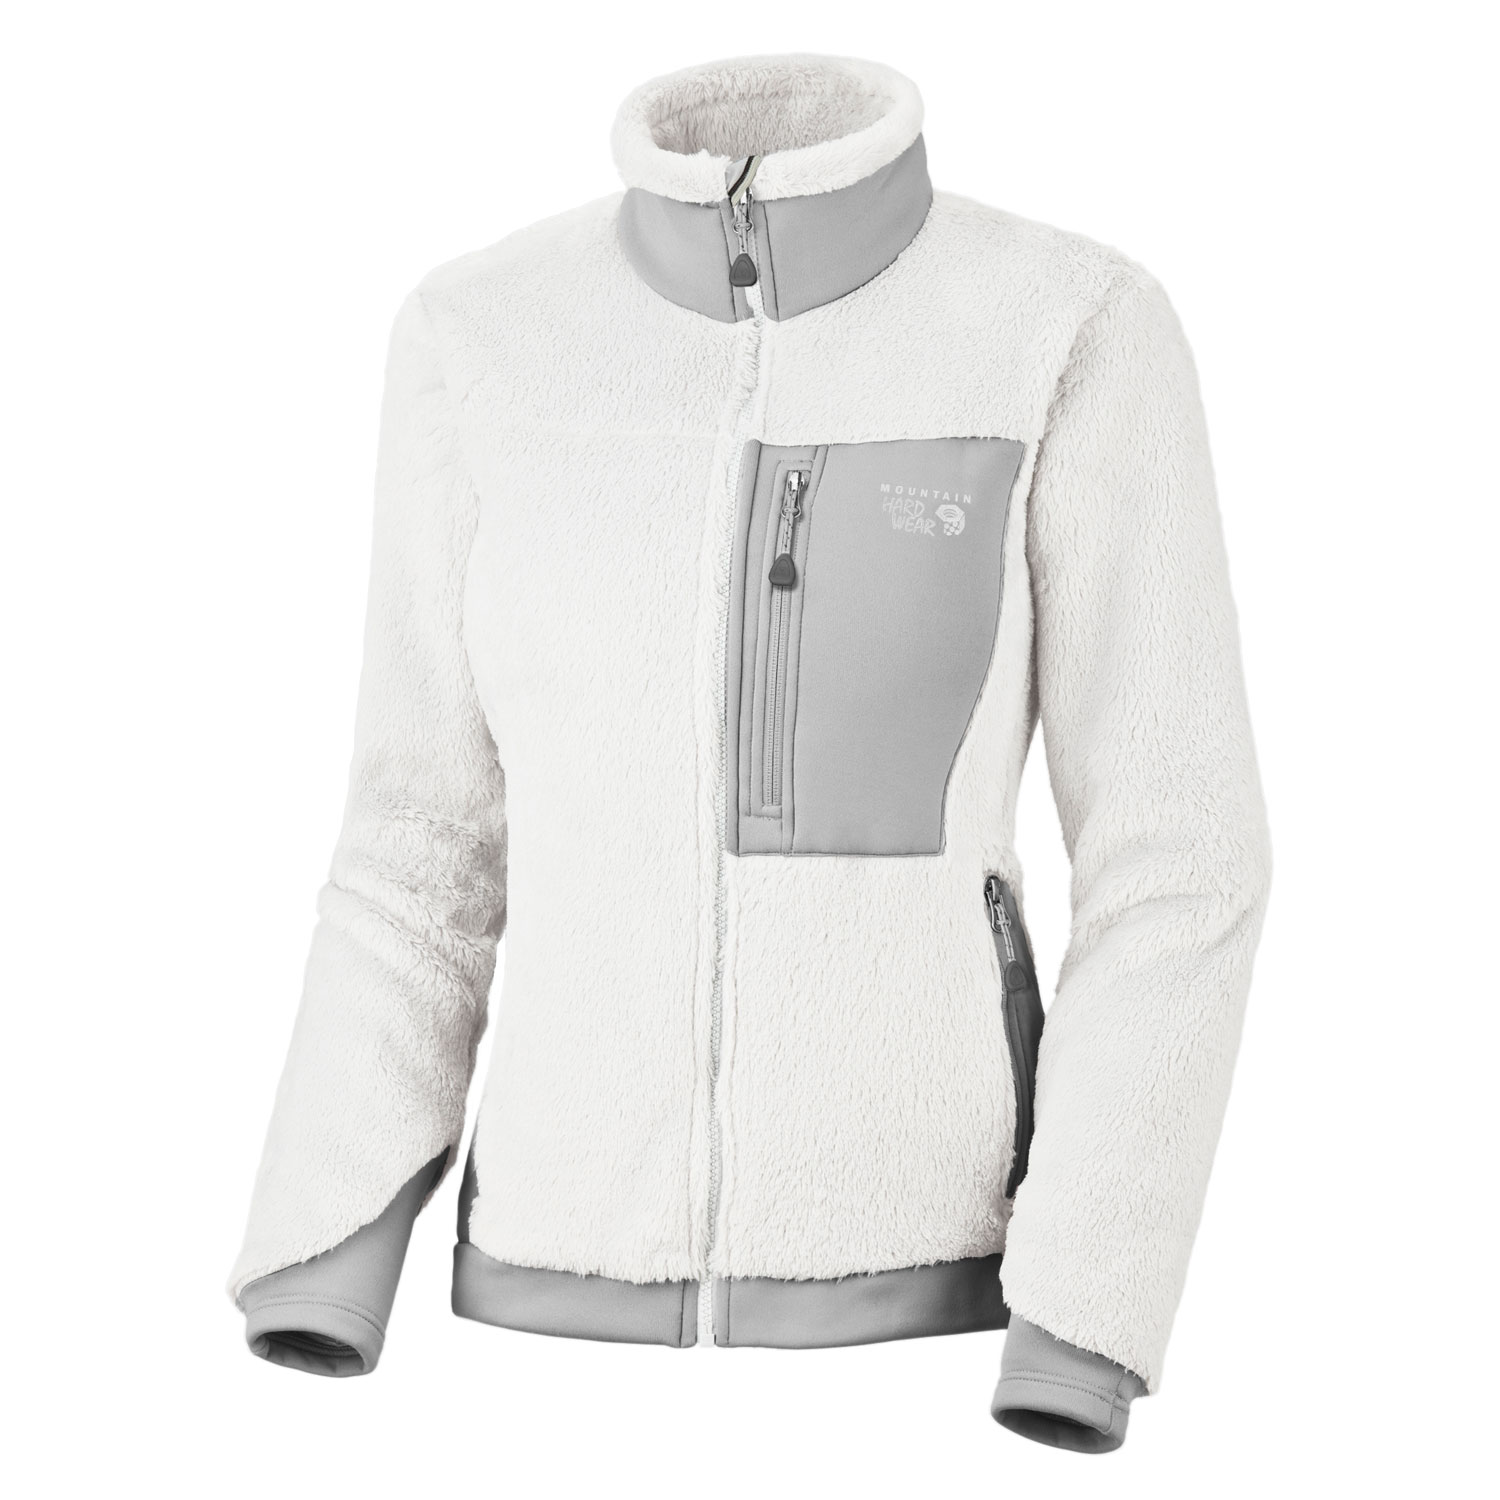 "Key Features of the Mountain Hardwear Monkey Woman Fleece: Avg. weight: 15oz; 430g Center back length: 26"" Fabric: body: Polartec ThermalPro Monkey Phur (100% polyester) panel: Polartec Power Stretch (88% polyester, 12% Elastane) MicroClimate Zoning construction for built-in warmth, breathability and stretch Extremely soft, extremely warm Stretch hem and cuffs seal in warmth Zip handwarmer pockets Chest pocket for maps, snacks, and other goodies - $119.95"